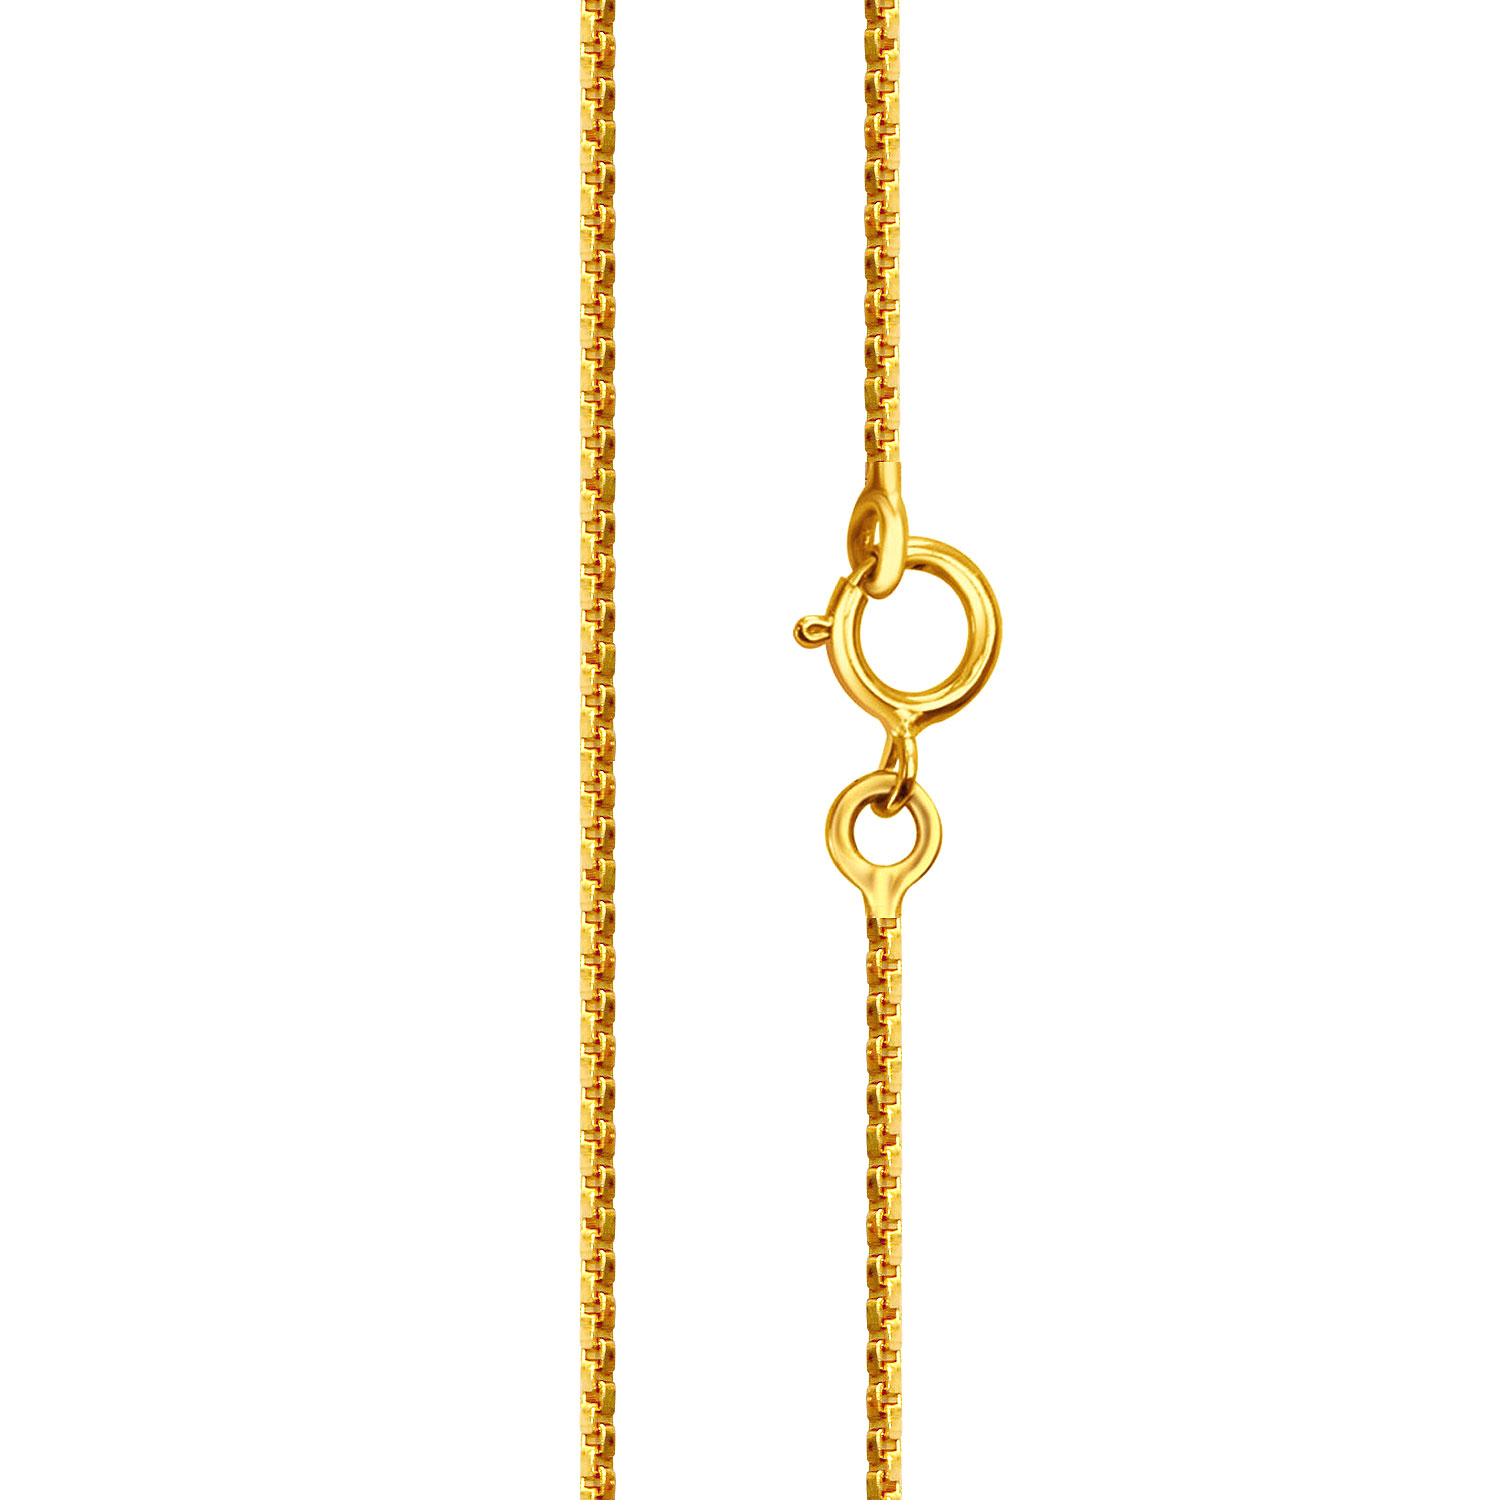 ladies yellow product necklaces chains l material category jewellery curb solid necklace webstore number gold jones ernest